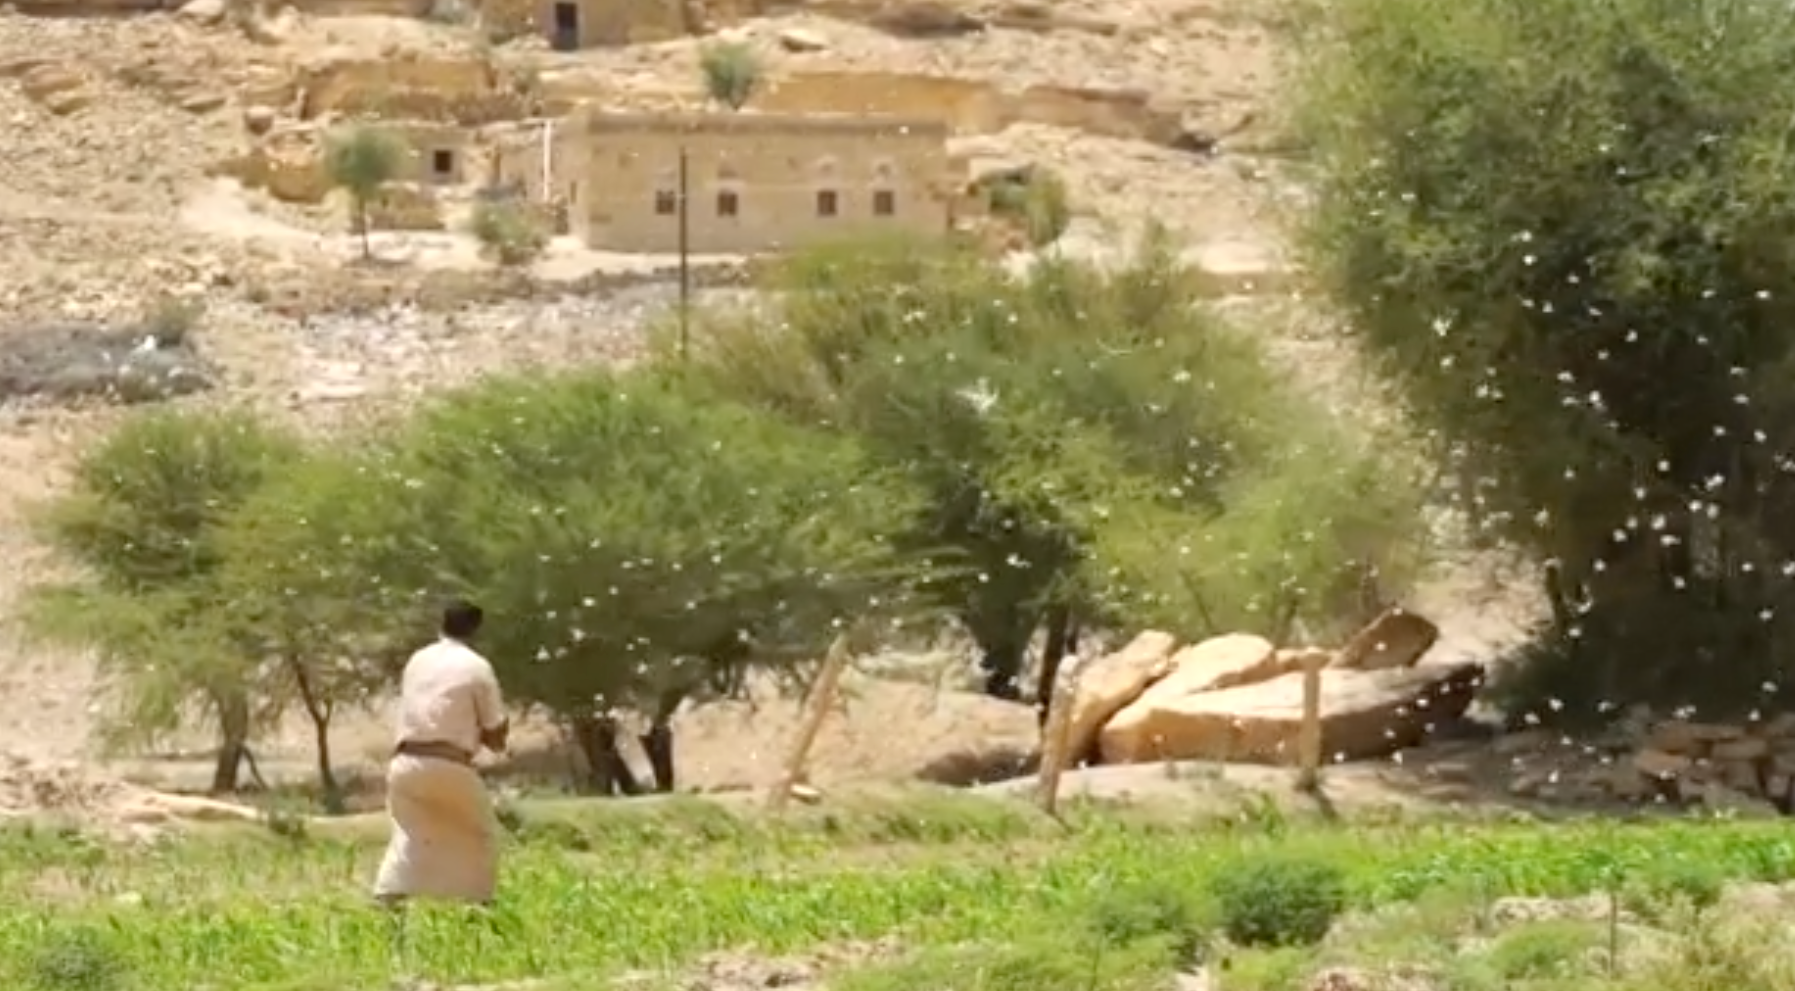 shooing away locusts in yemen